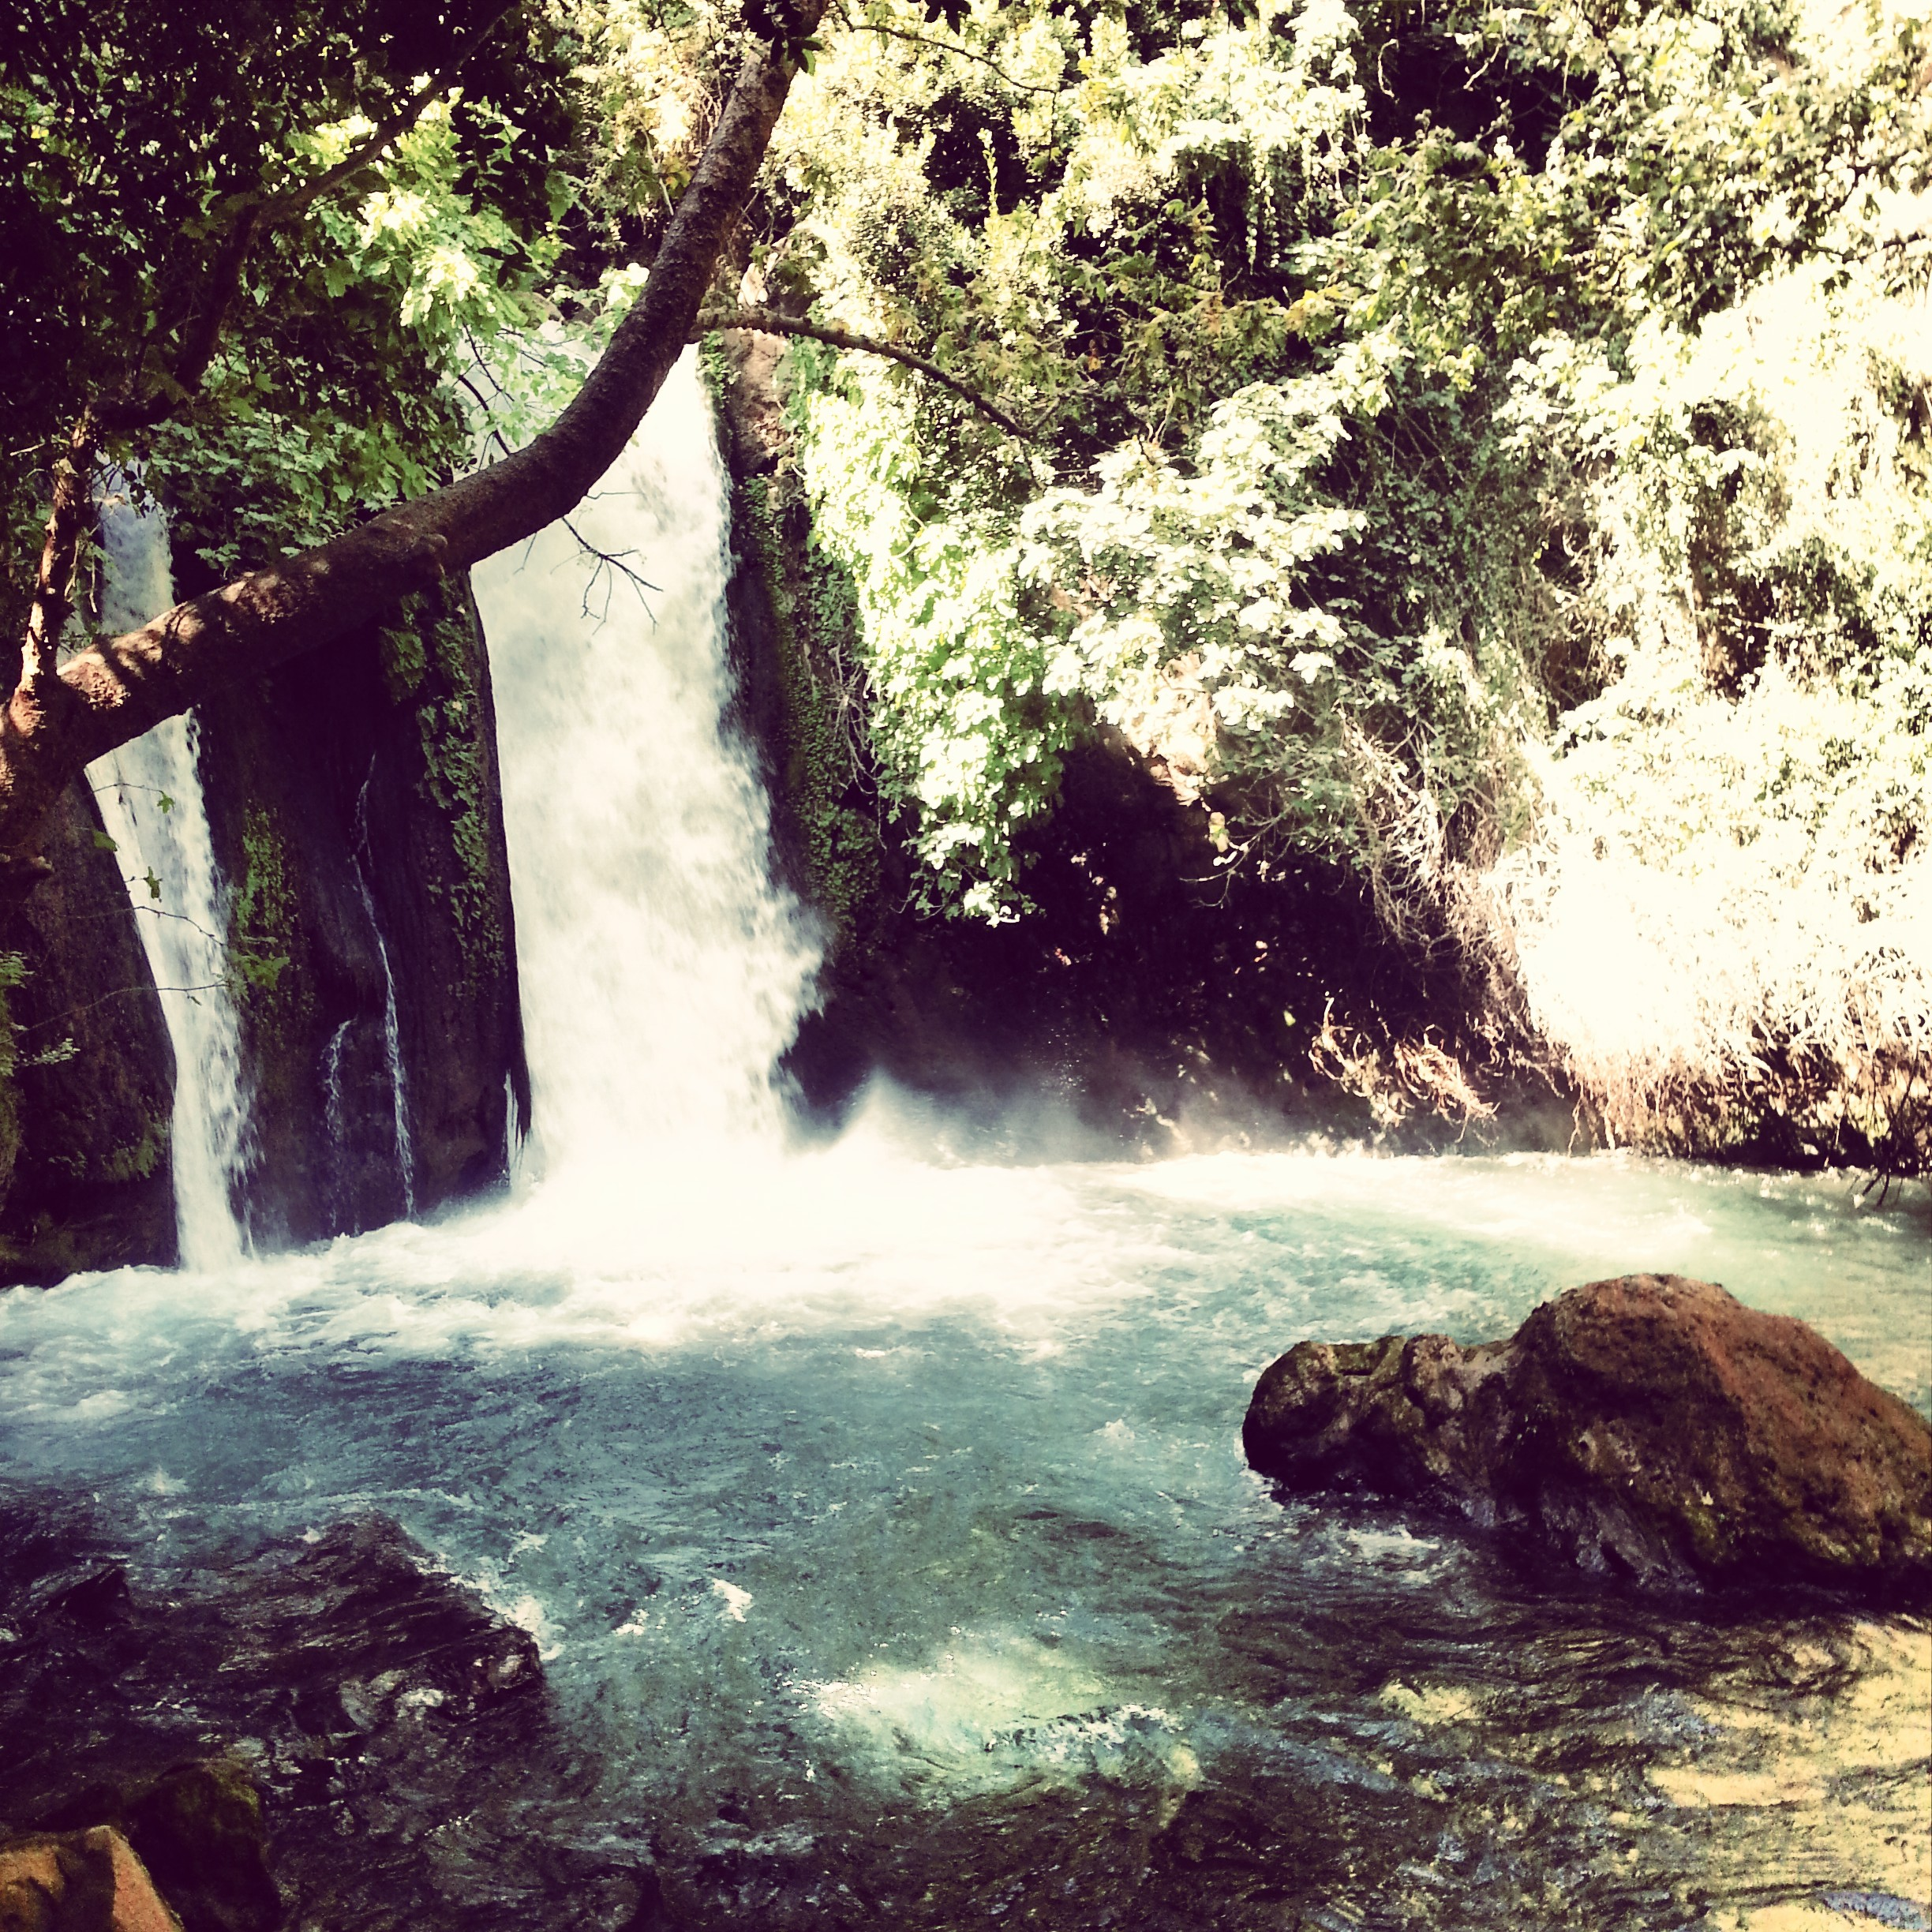 Waterfalls at Banias